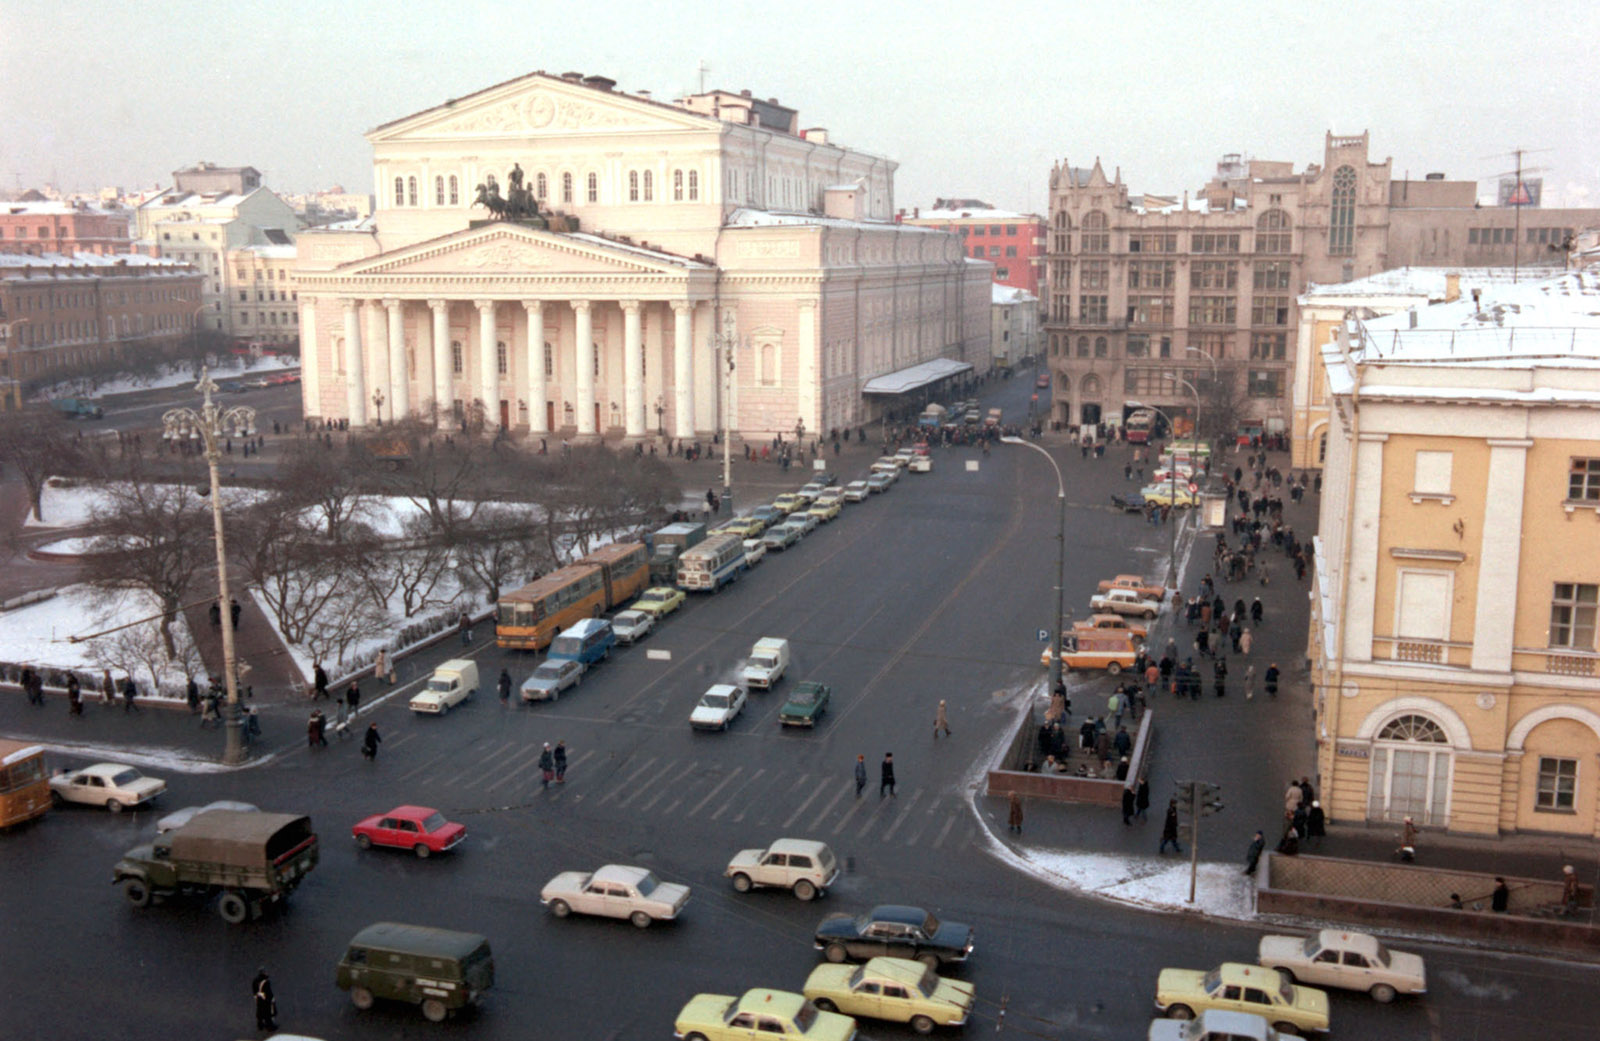 A view of the Bolshoi Theater, Moscow, USSR, January 1988